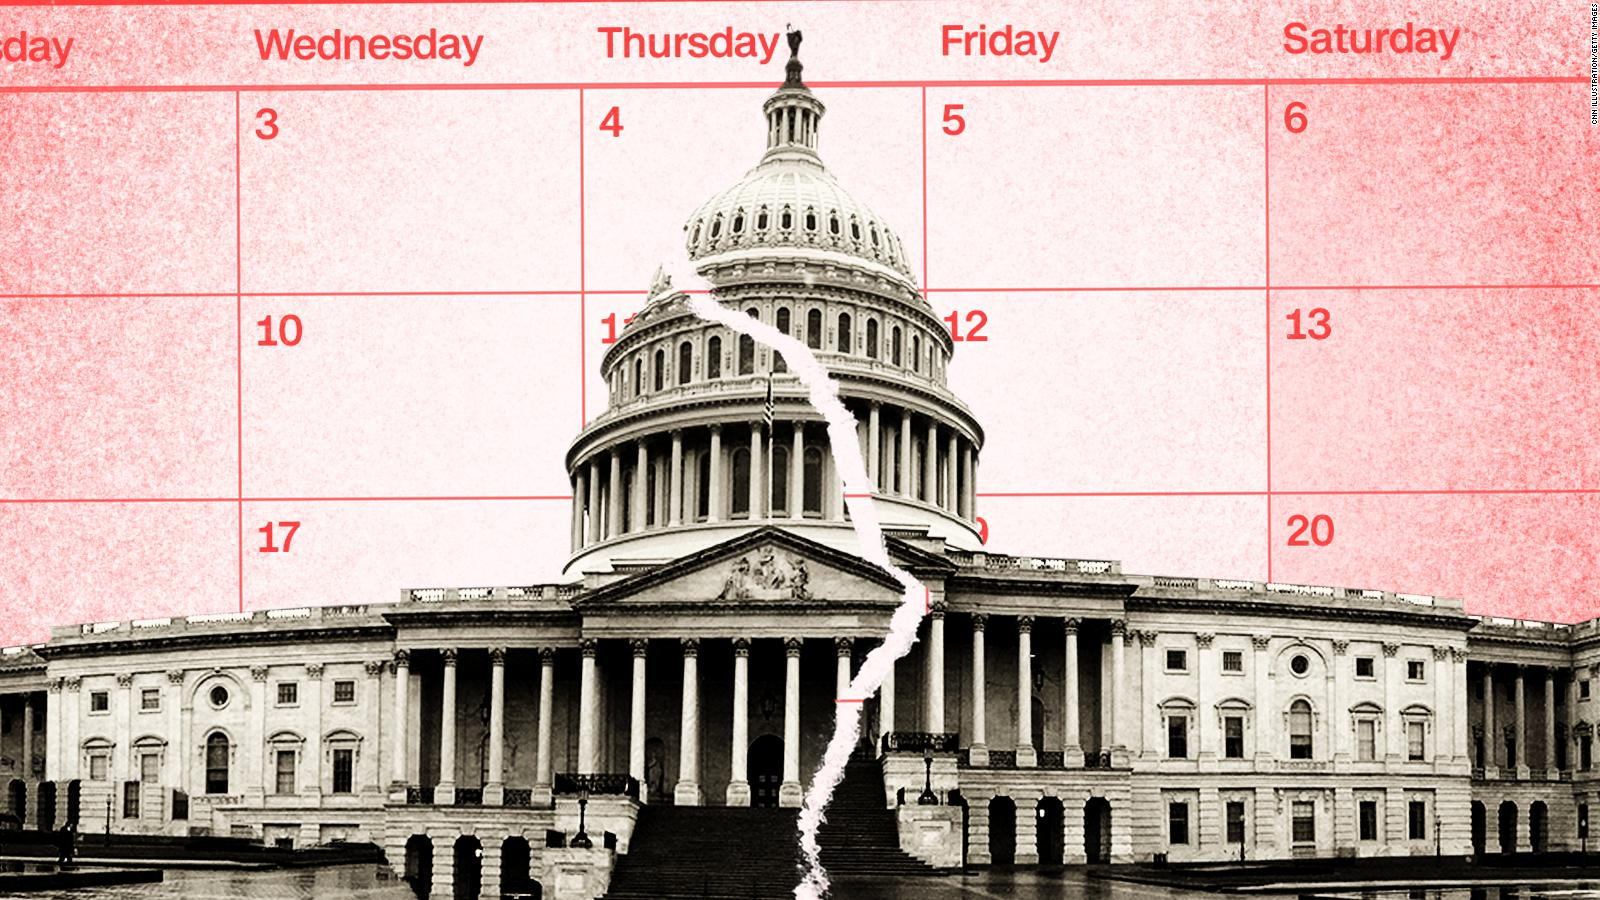 A digital illustration of the Capitol split in two with a calendar